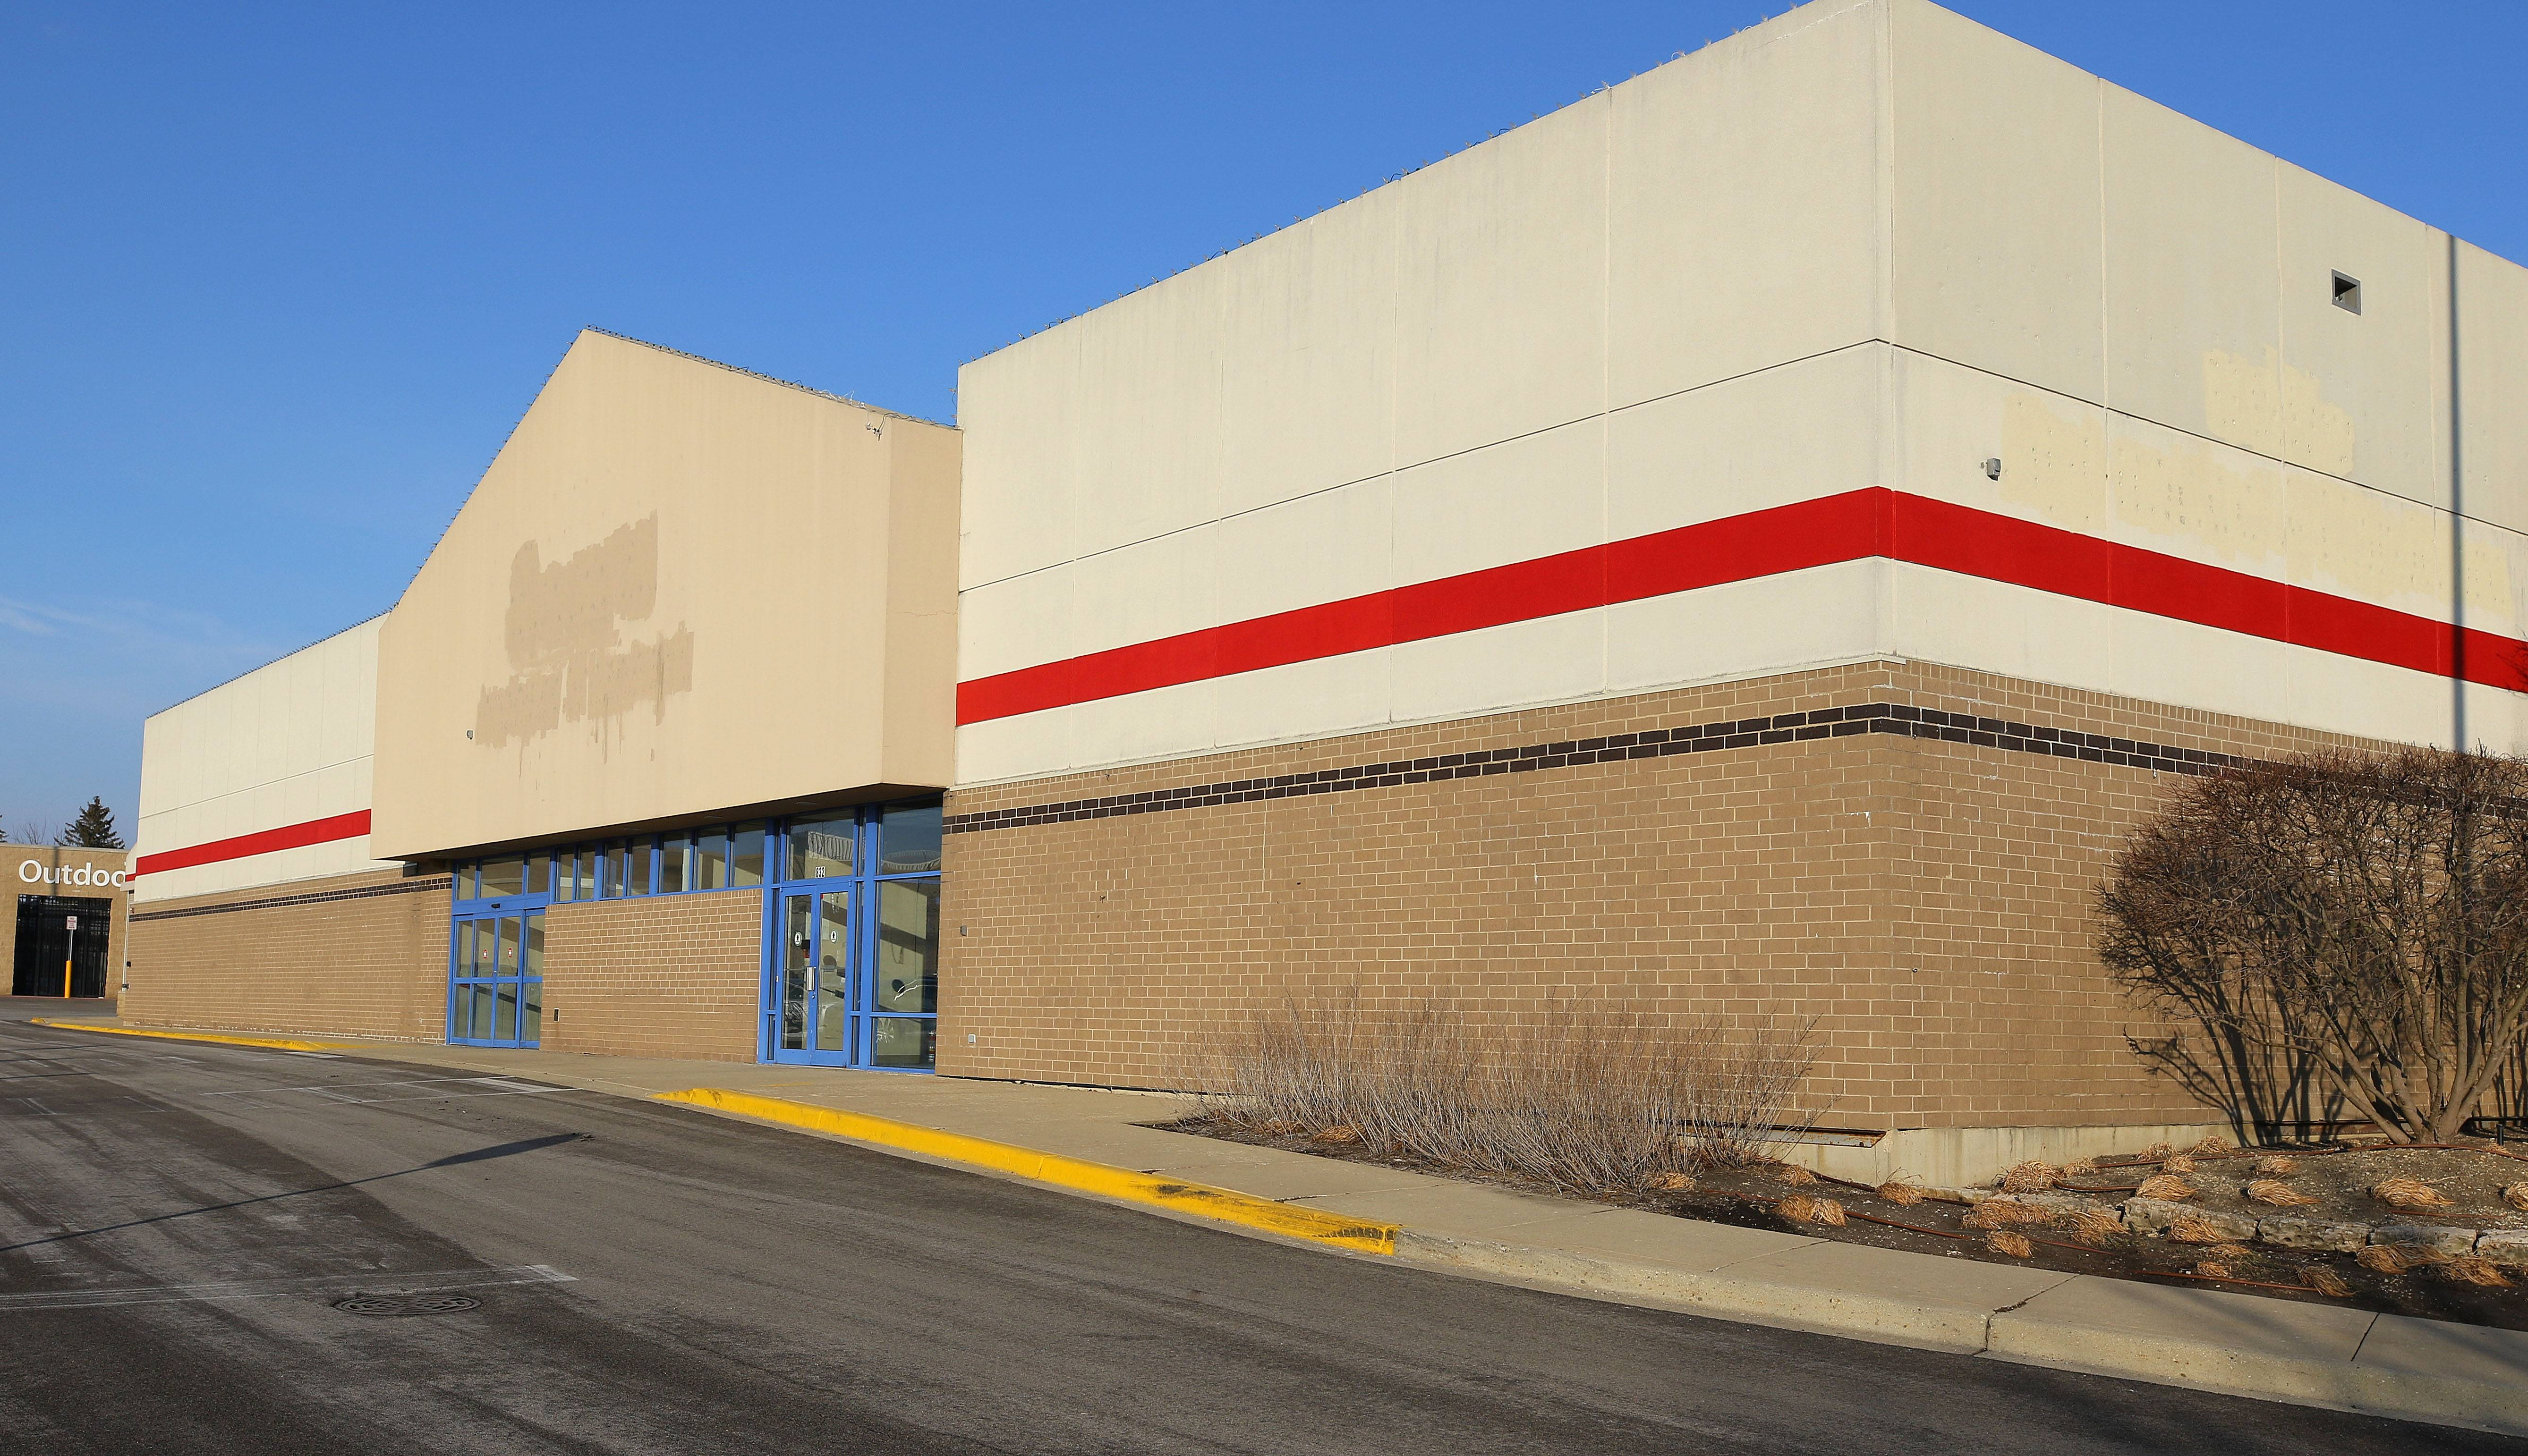 Lake Zurich Unit District 95 plans to consolidate its administrative offices, IT and teacher training spaces in the former Sears Hardware building at 832 S. Rand Road.